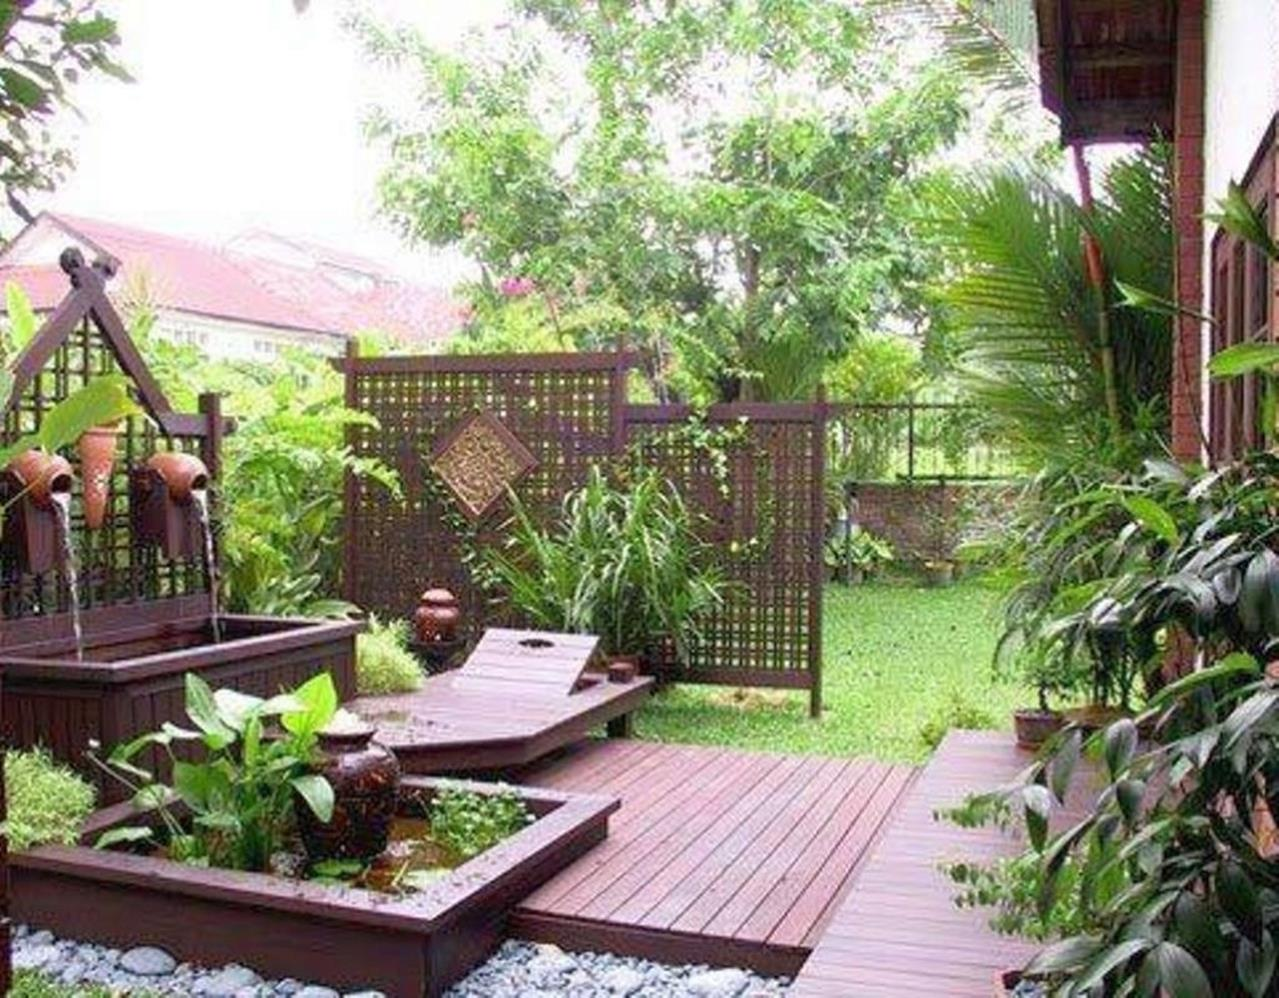 50+ Perfect Small Outdoor Spaces Design Ideas - DecoRelated